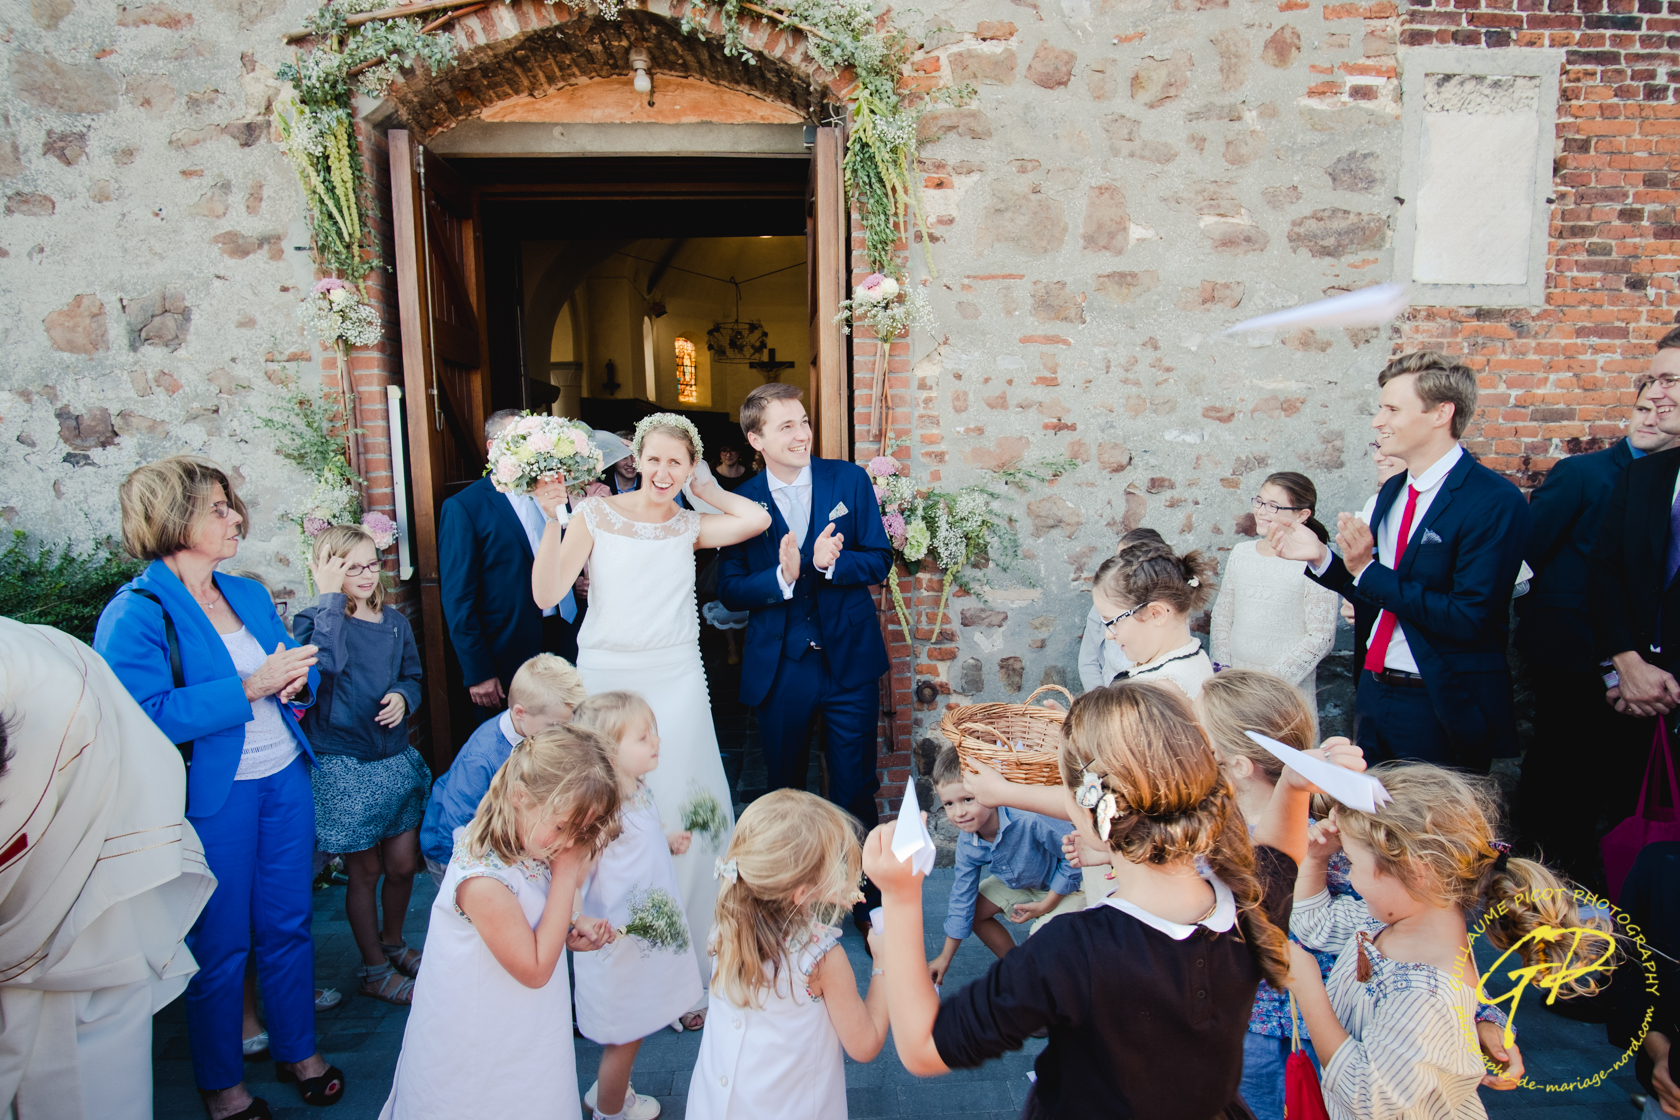 mariage-claire-fontaine-wicres-76-sur-151